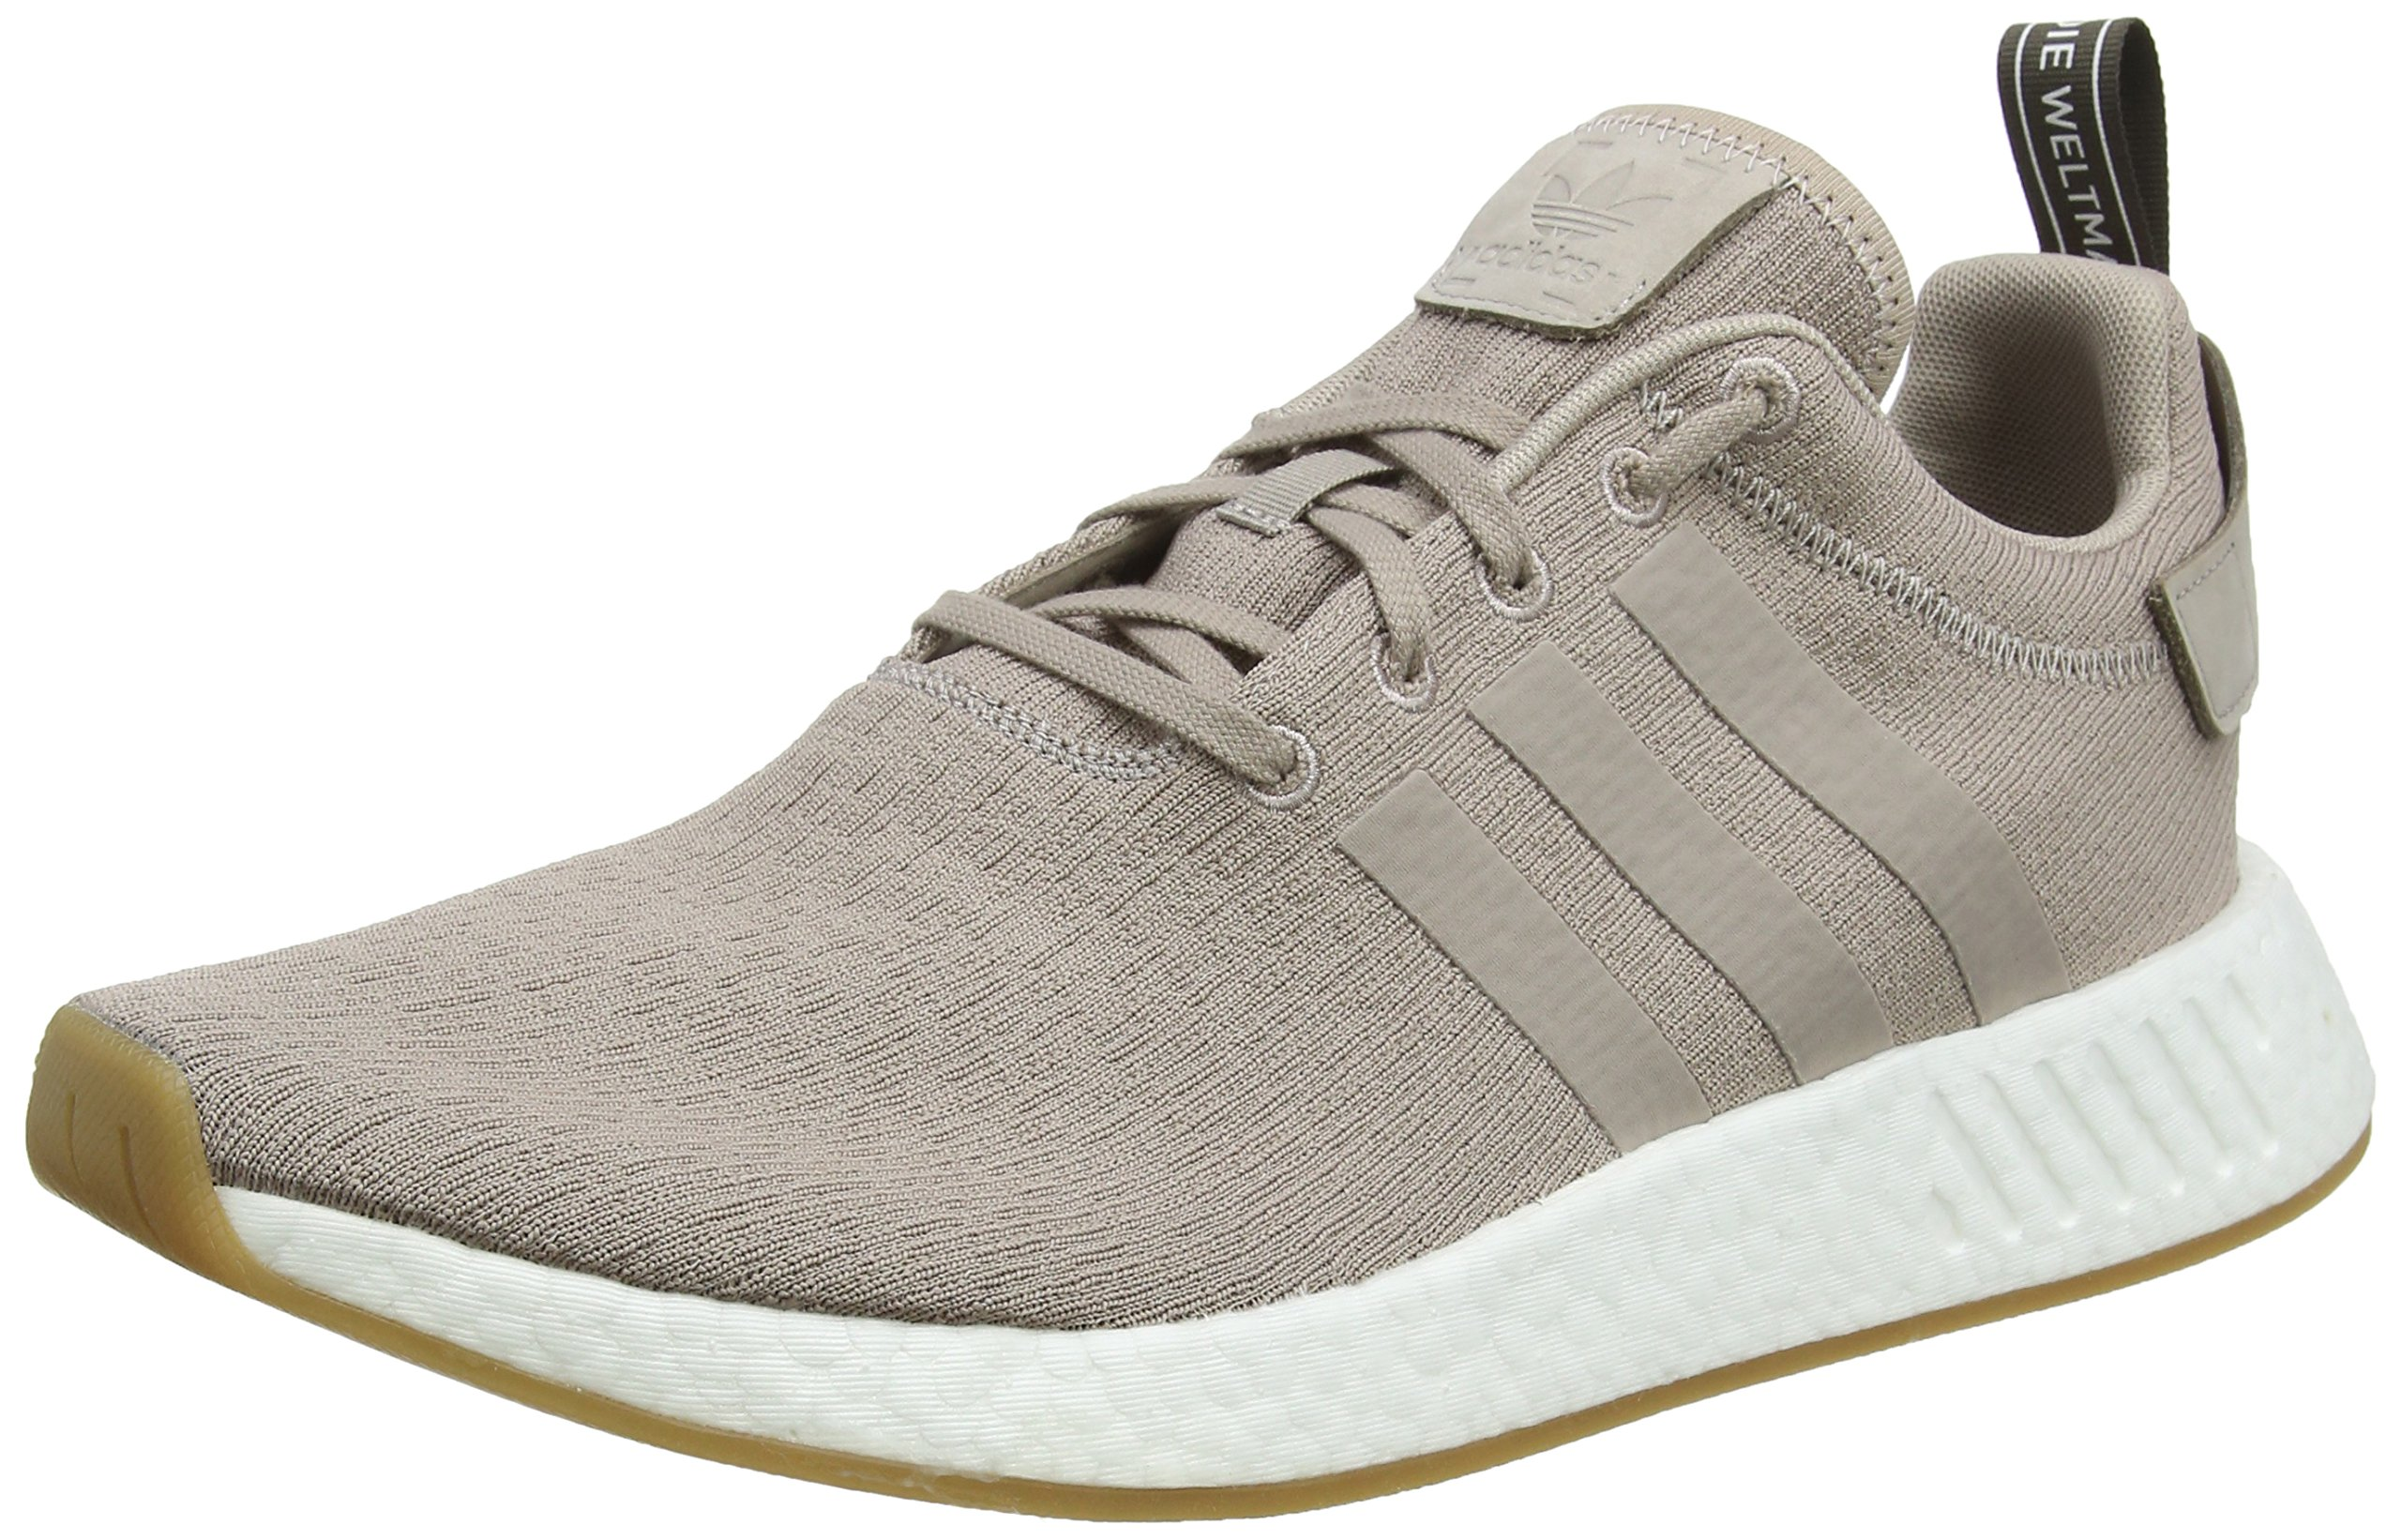 Galleon - Adidas Originals Unisex NMD R2 -Grey Sneakers Pink In Size US 5  Men   6 Women a0439e0f6